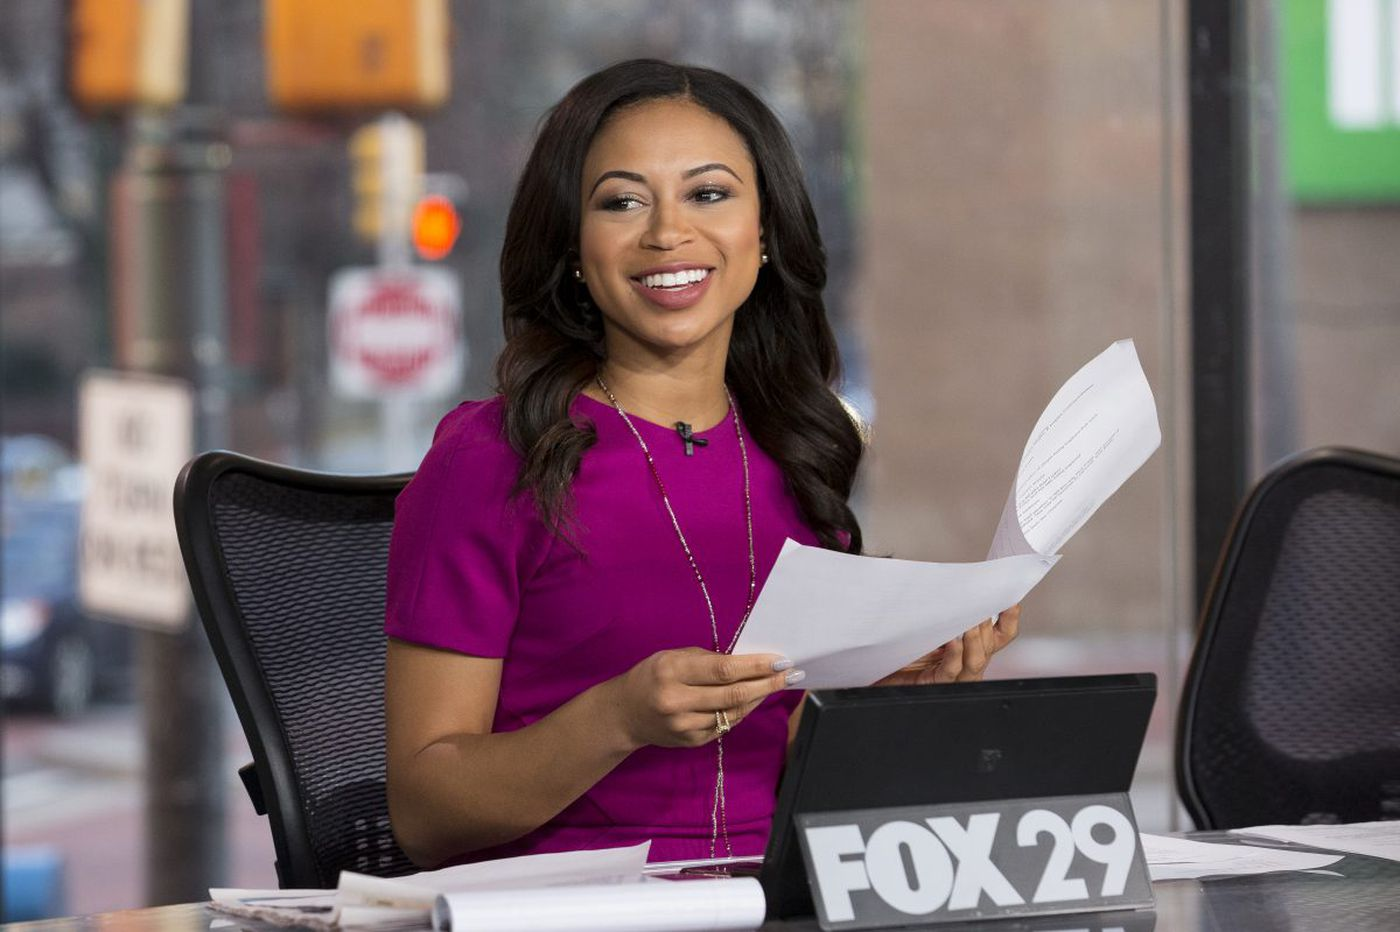 'Good Day Philadelphia's' Alex Holley is our town's 'It' anchor